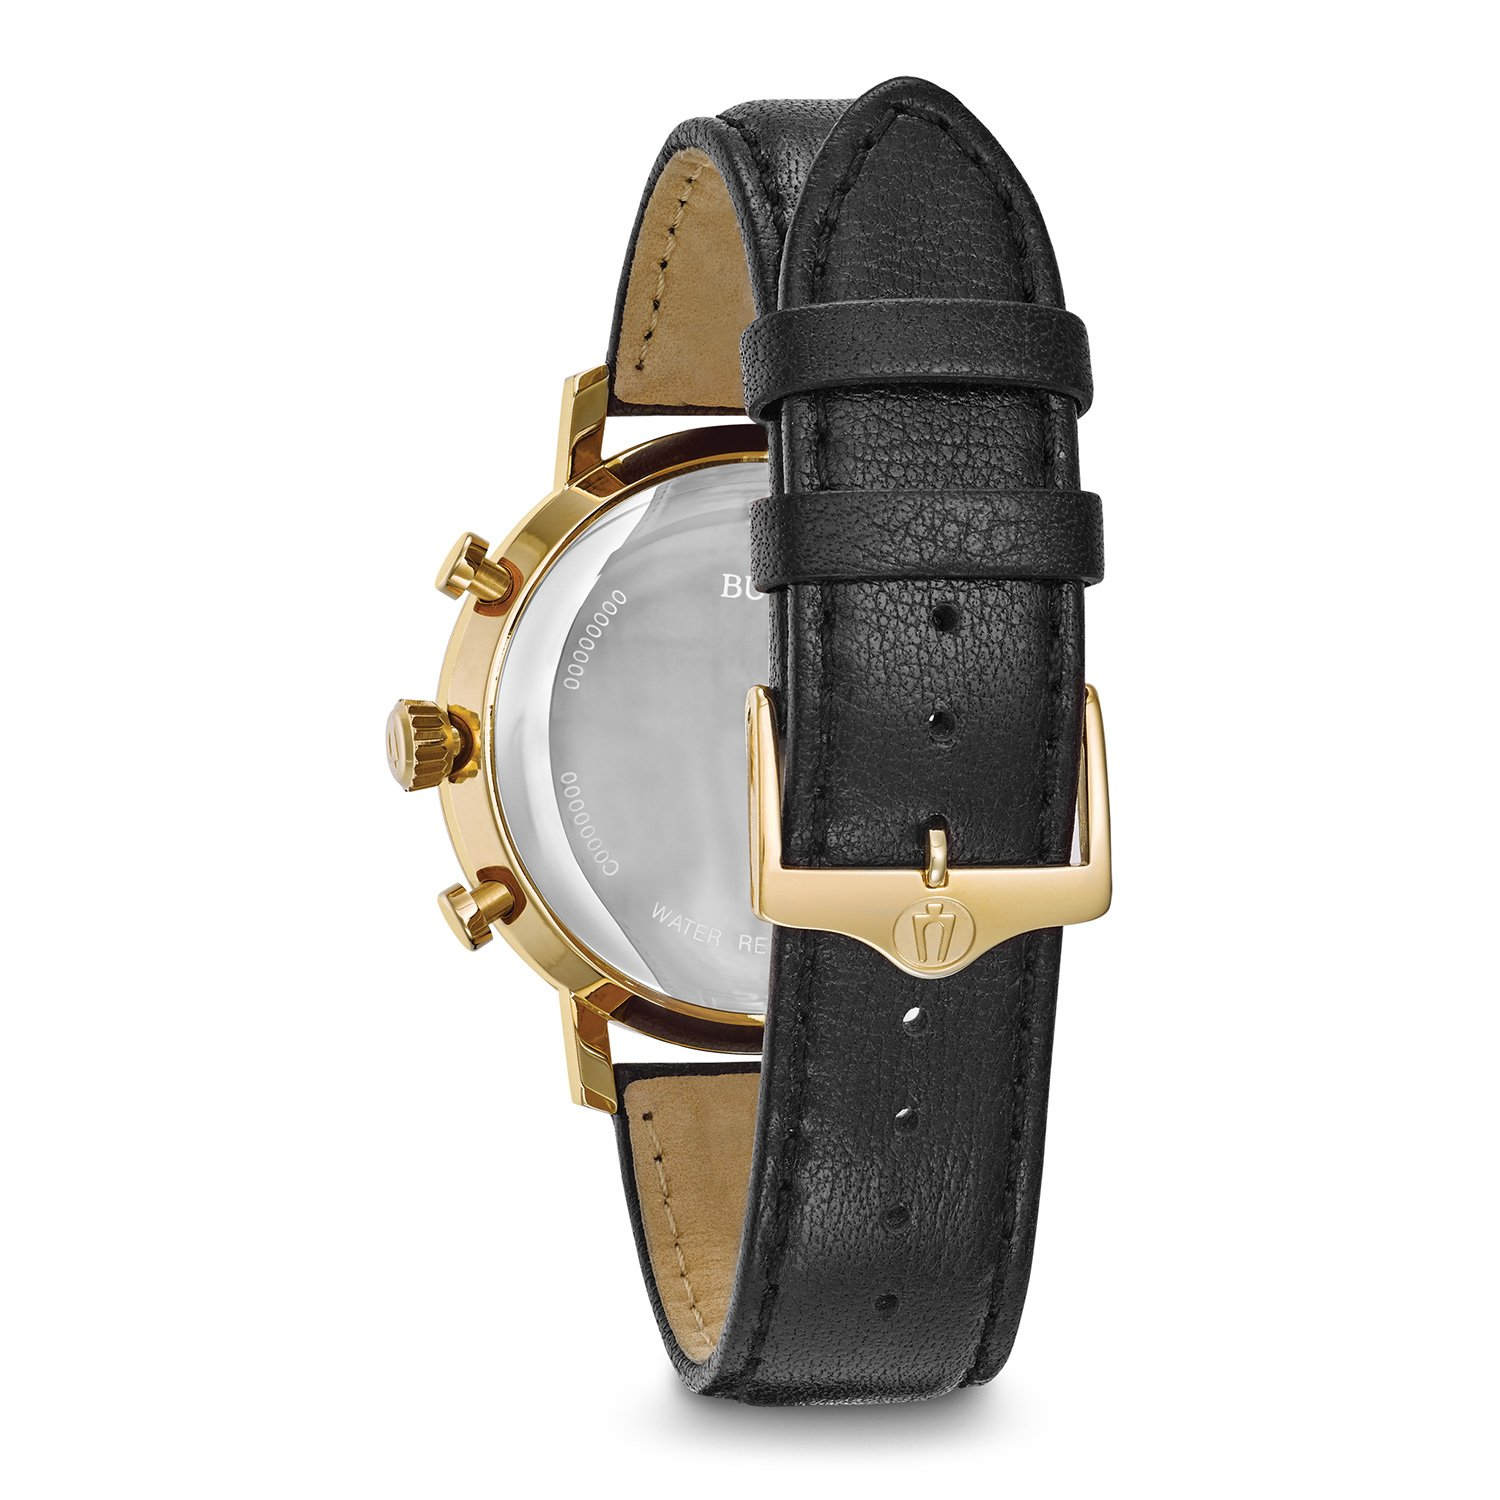 rsp watches main unisex watch black g timeless strap pearl buygucci of leather pdp date mother gucci